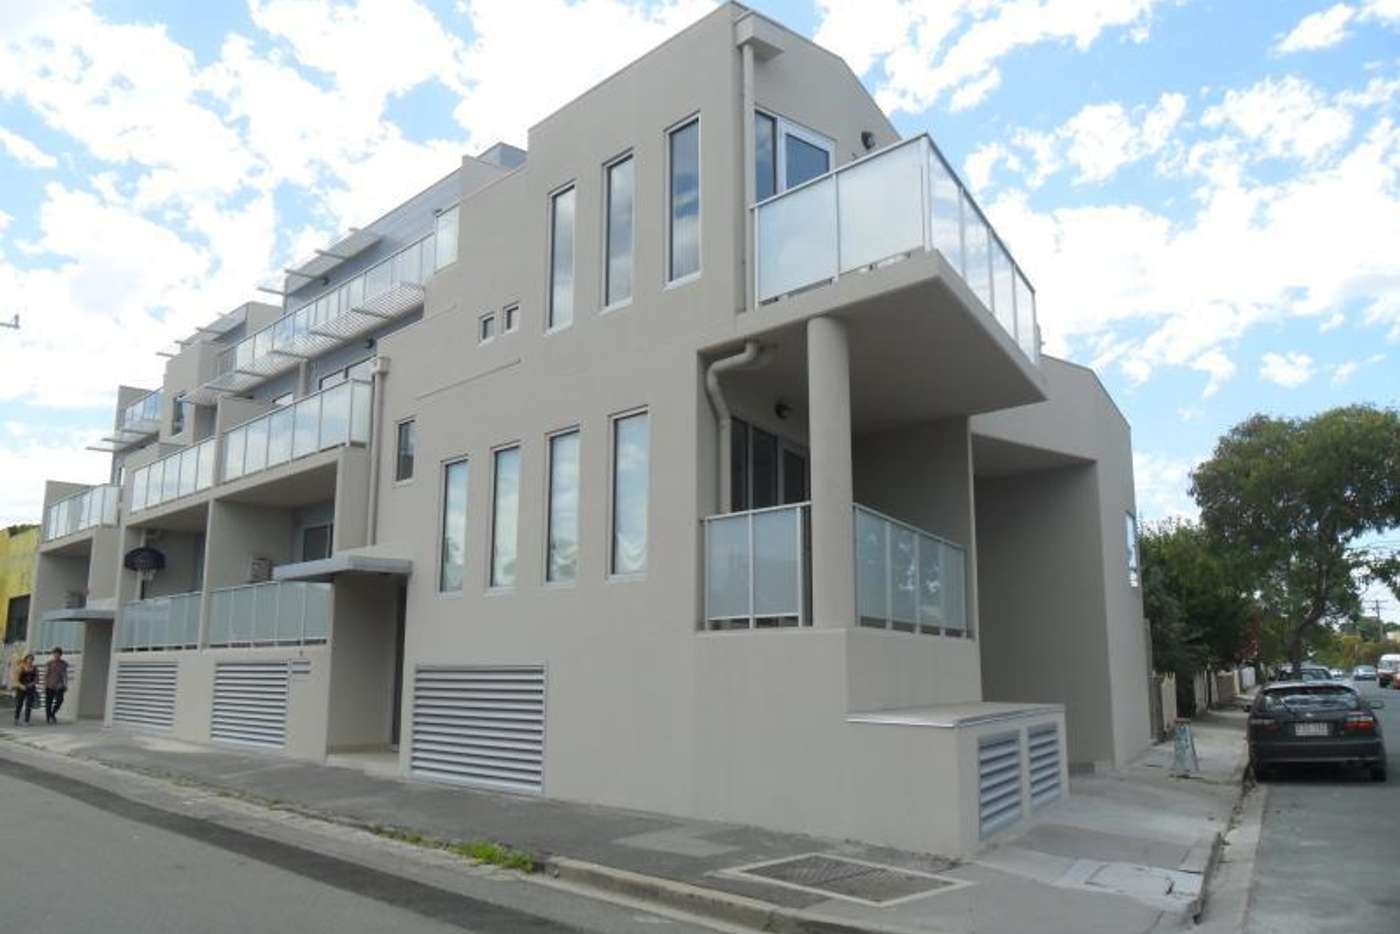 Main view of Homely apartment listing, G01/11 Woods Street, Yarraville VIC 3013